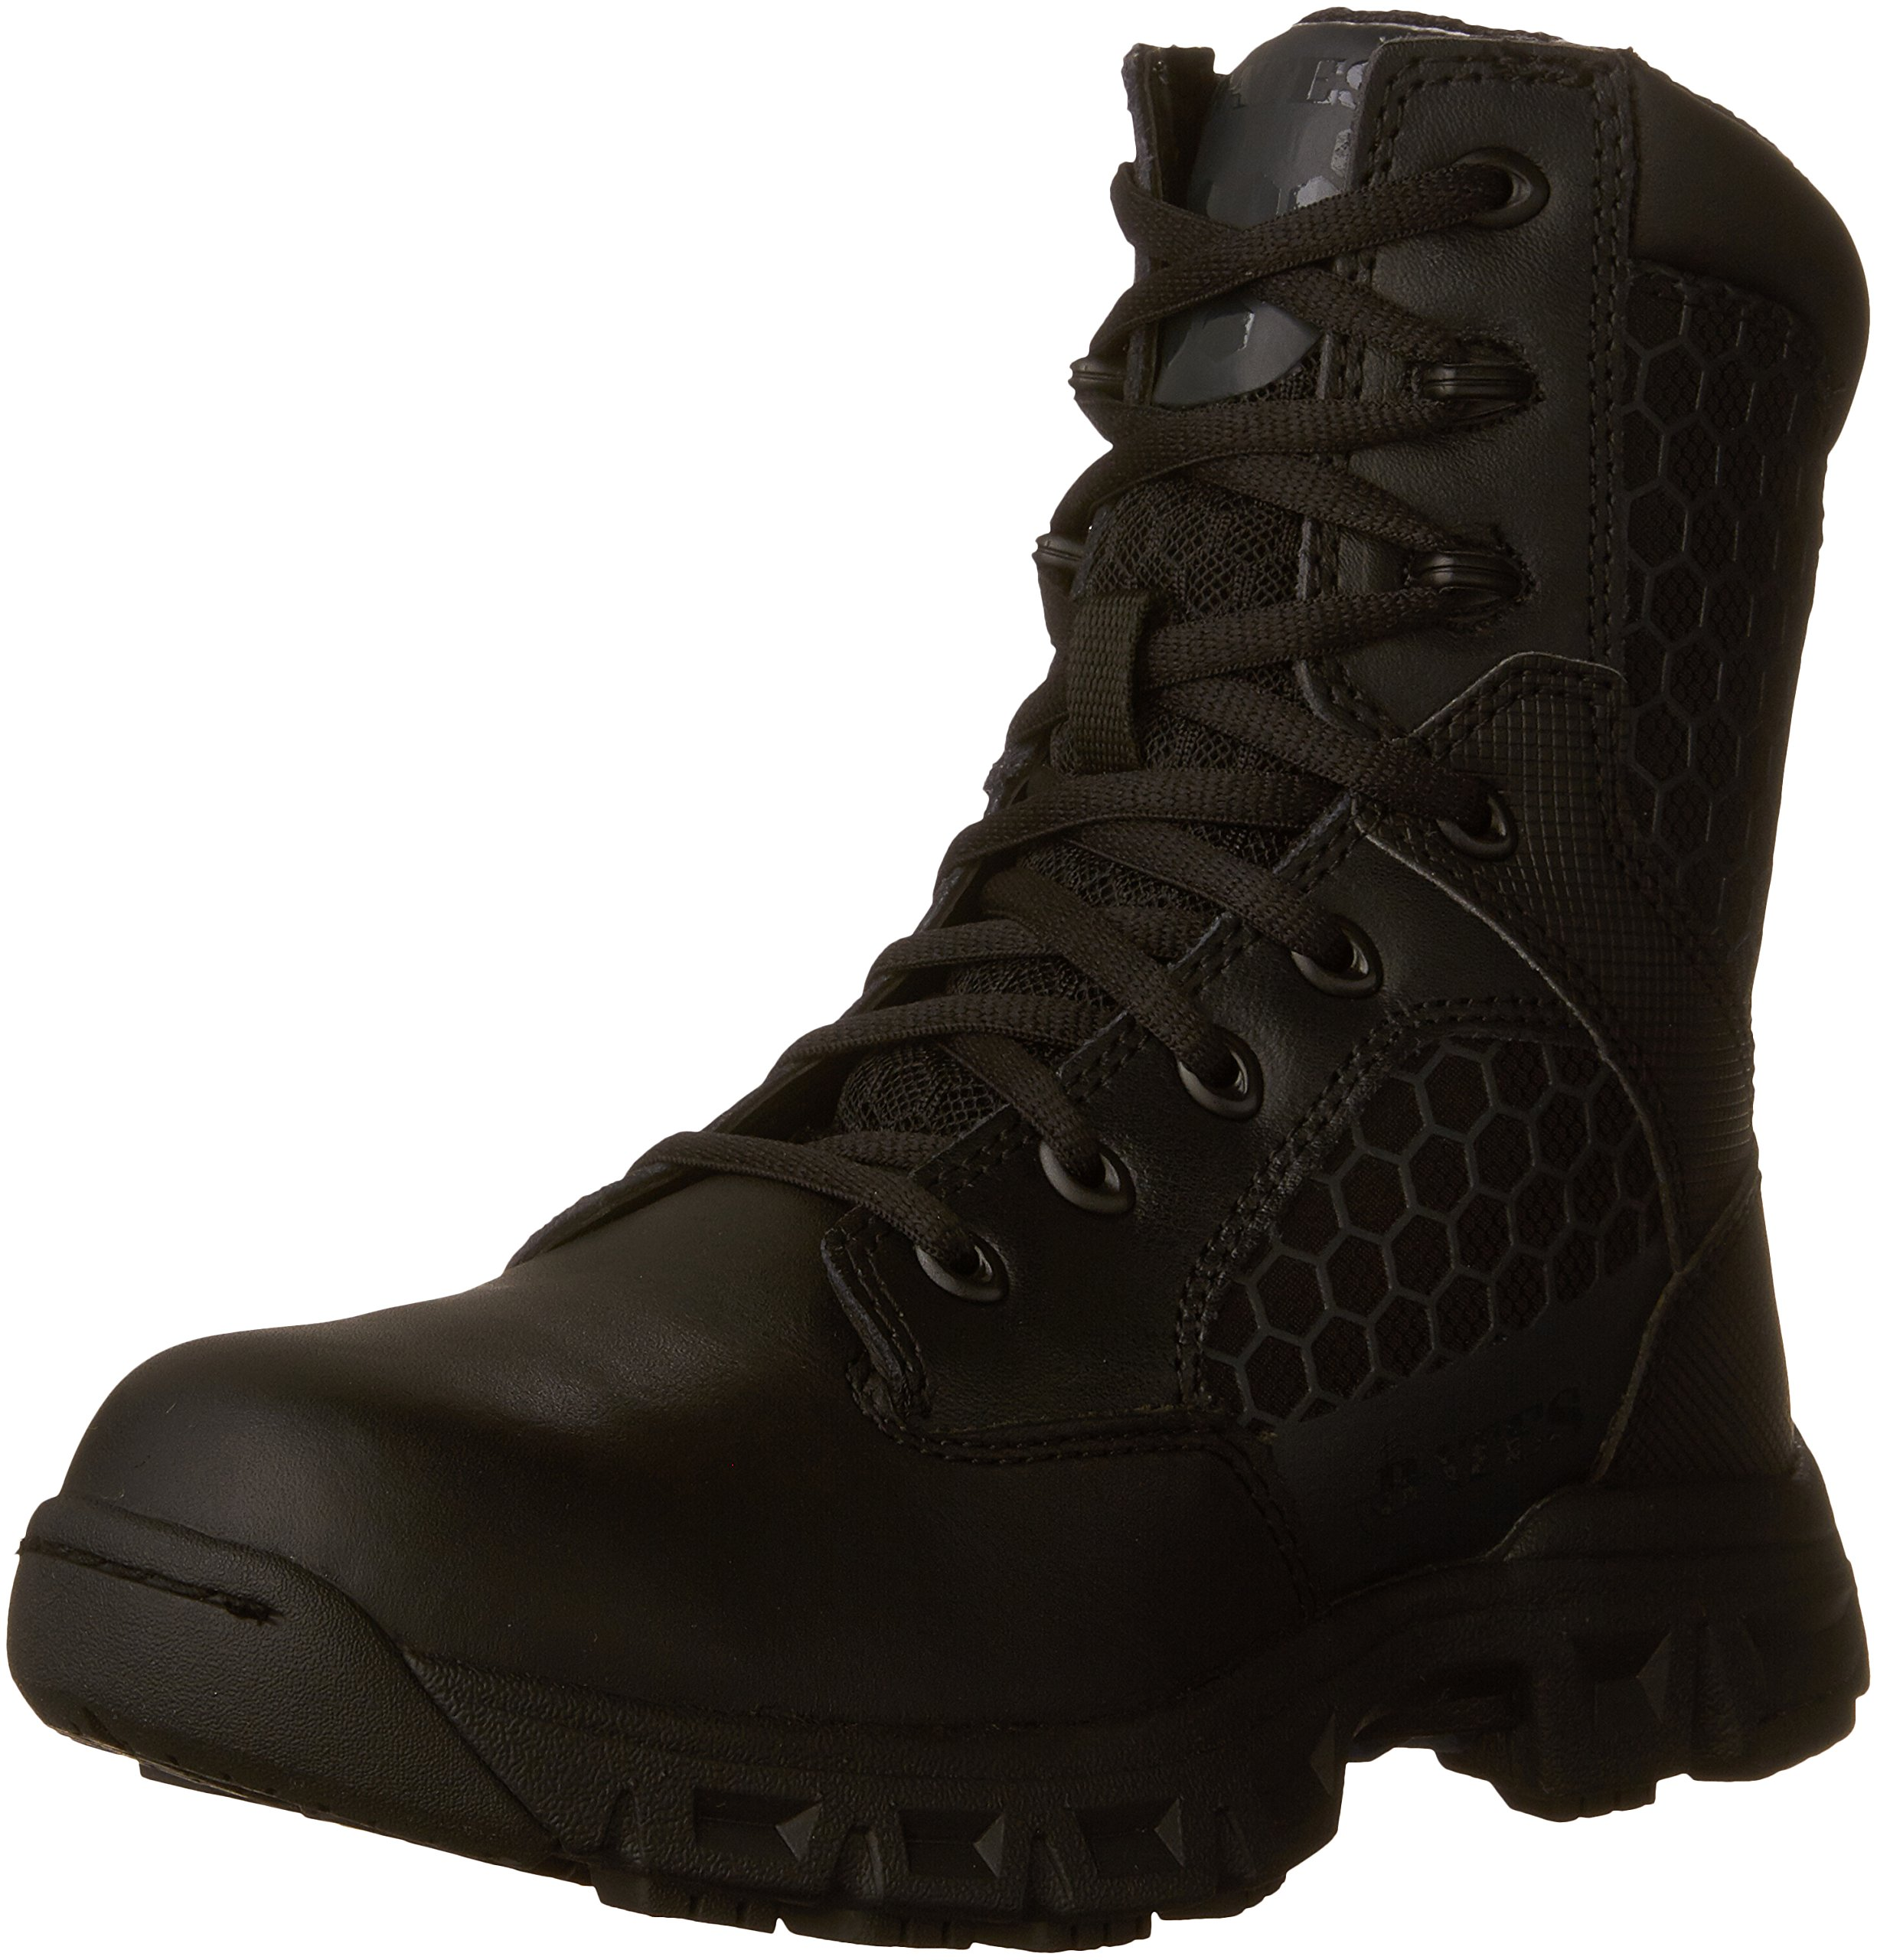 Bates Women's Code 6 Black 8 Inch Boot, Black, 10 M US